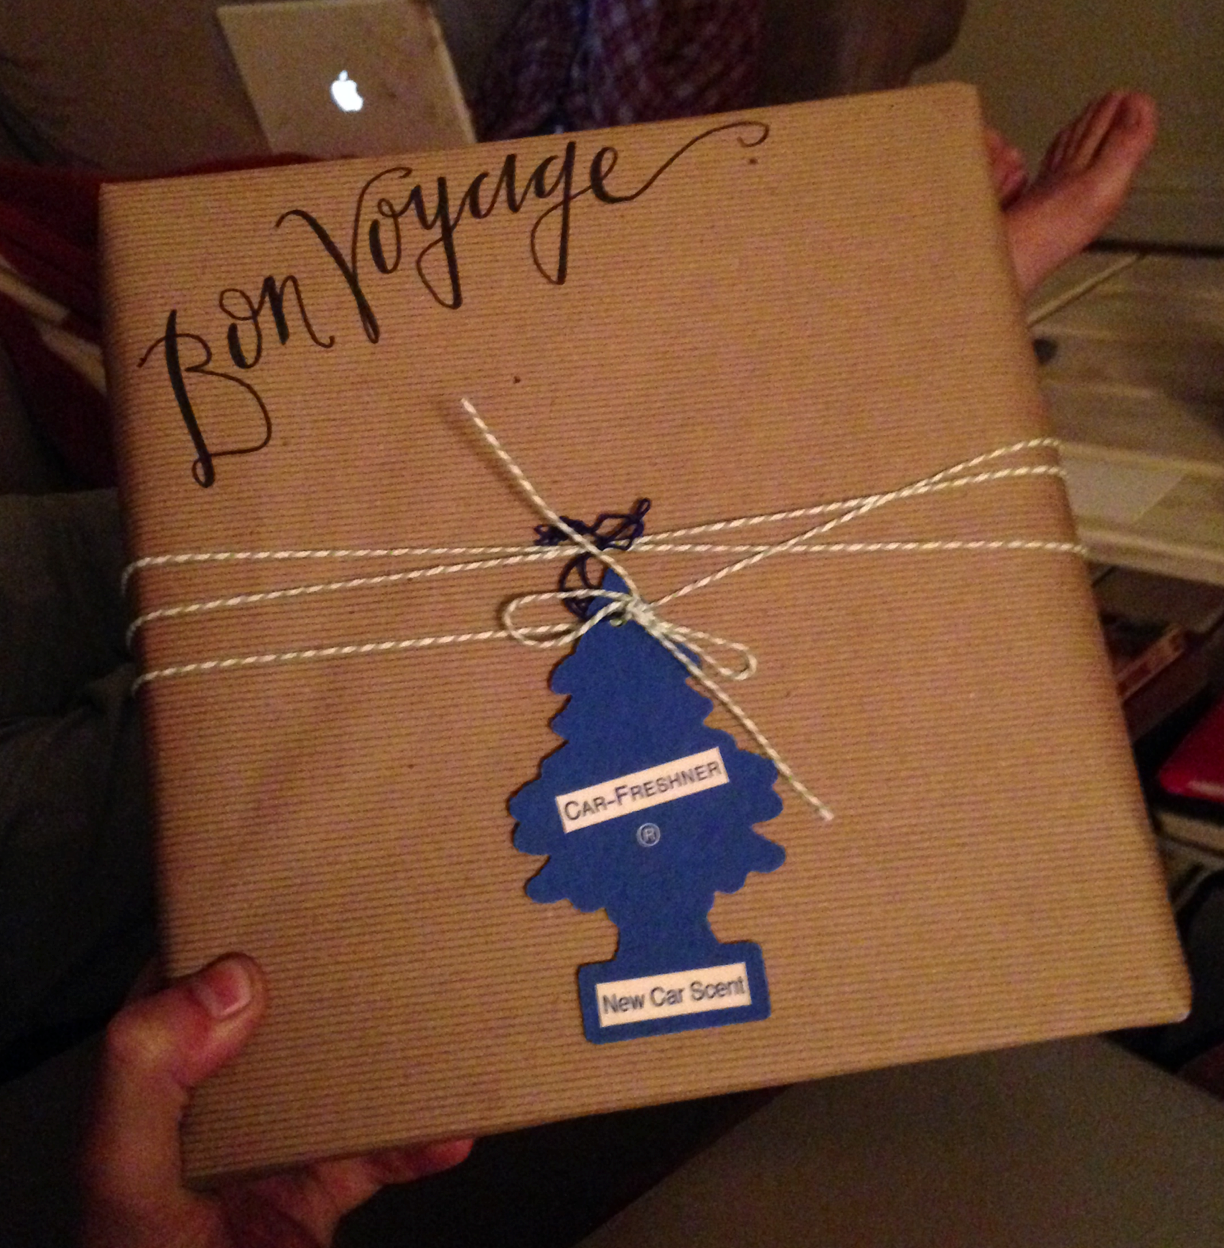 Whitney's hand writing and gift wrapping are on point.